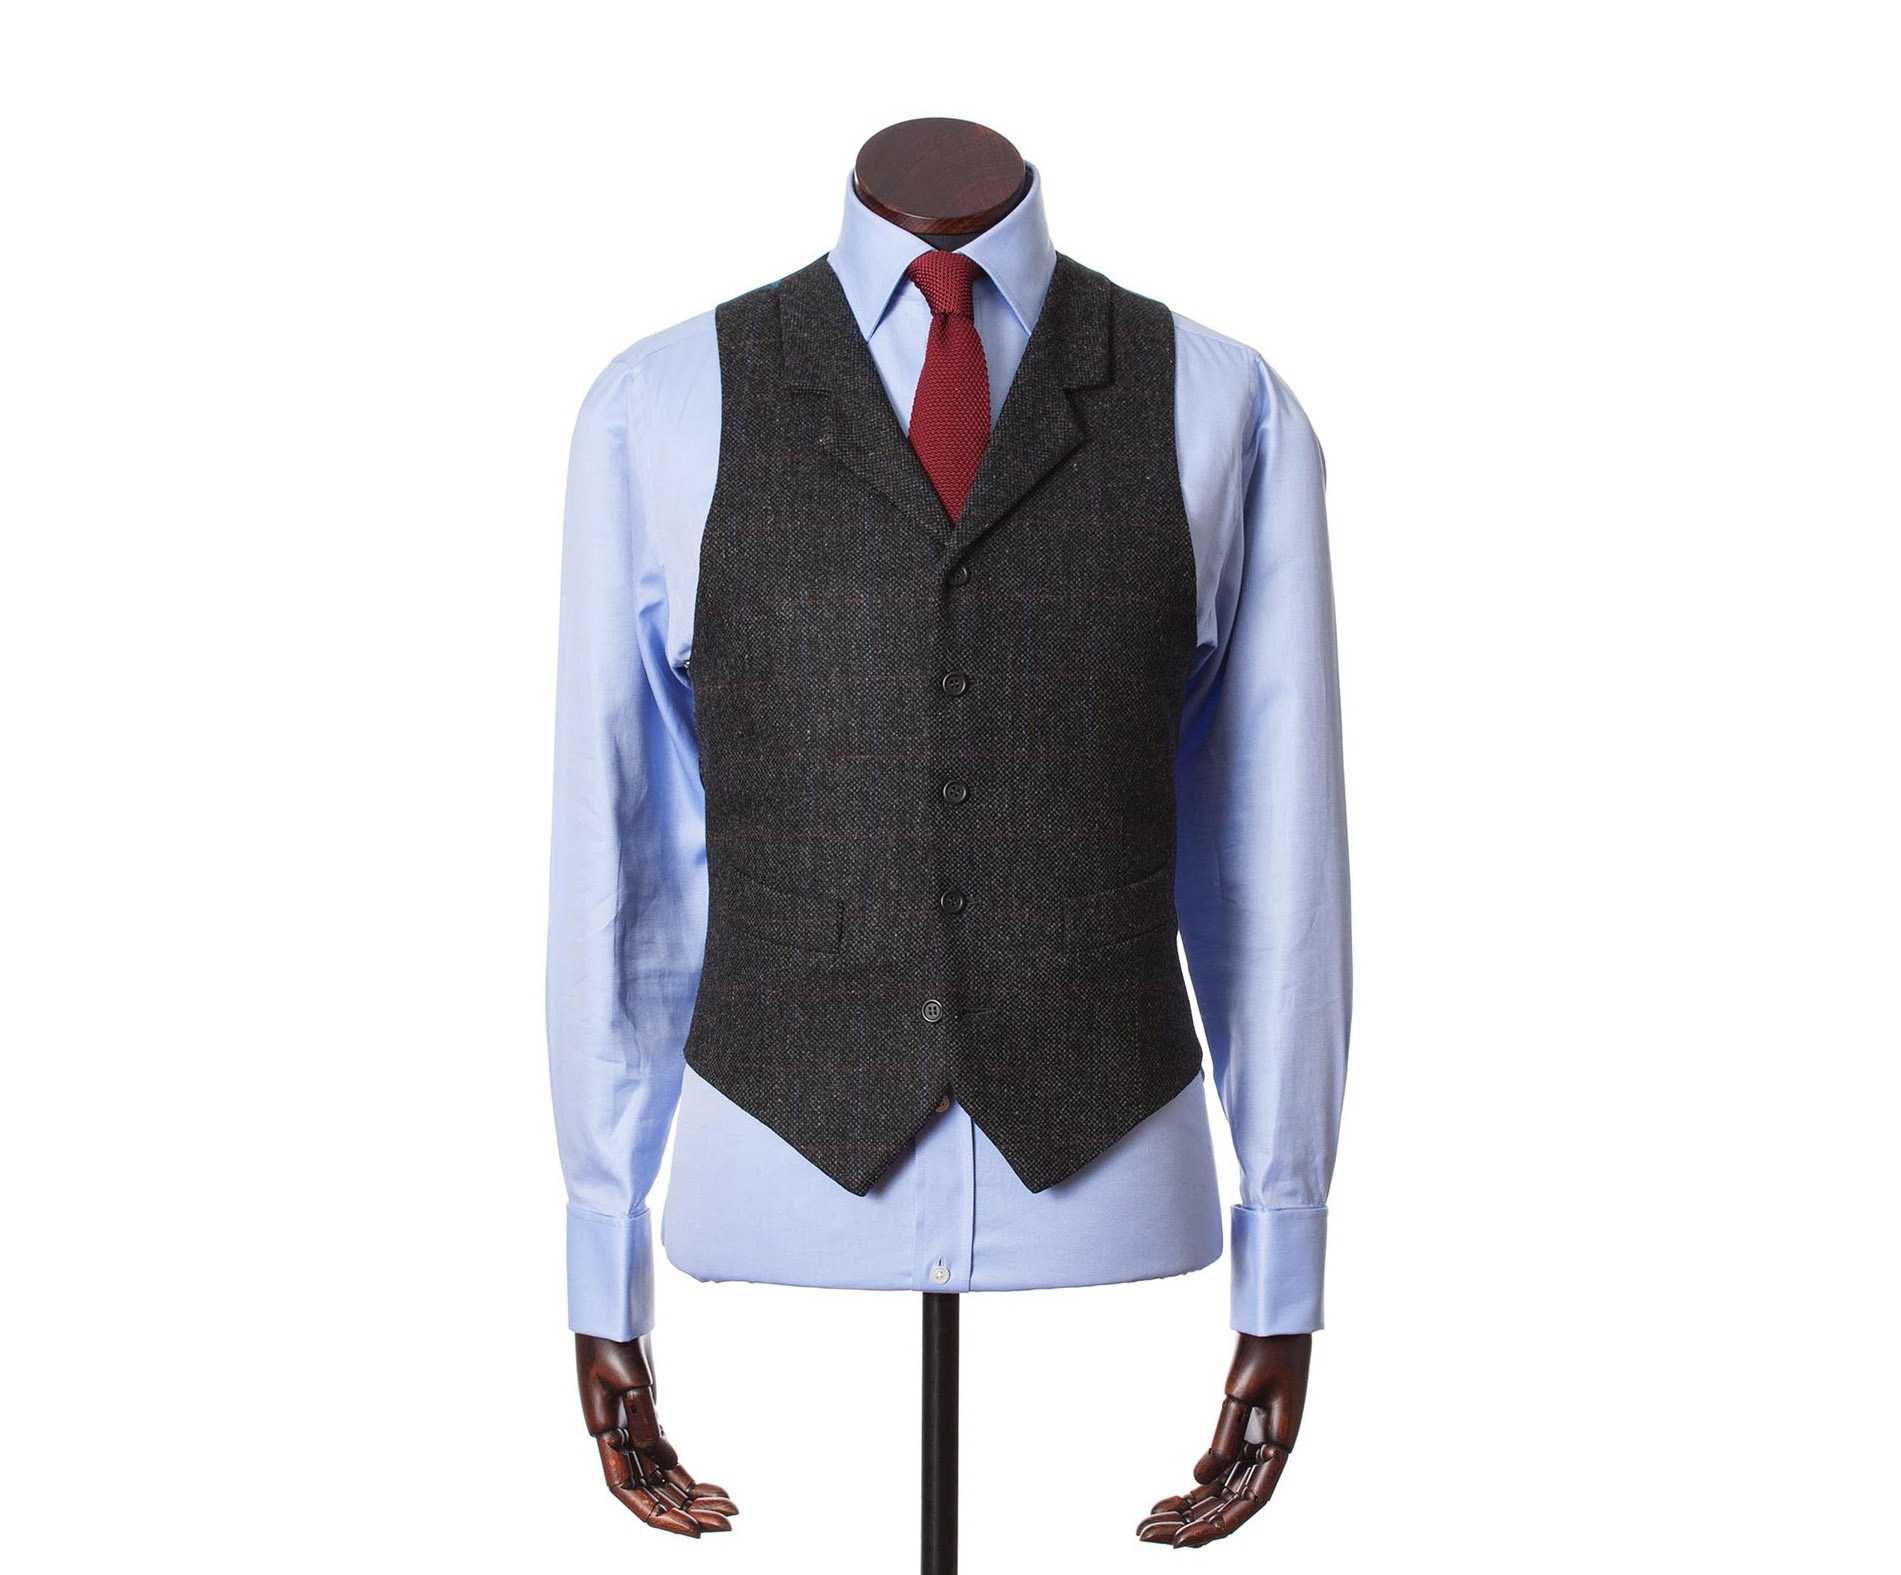 Men's Tweed Waistcoats Edward Charcoal Red